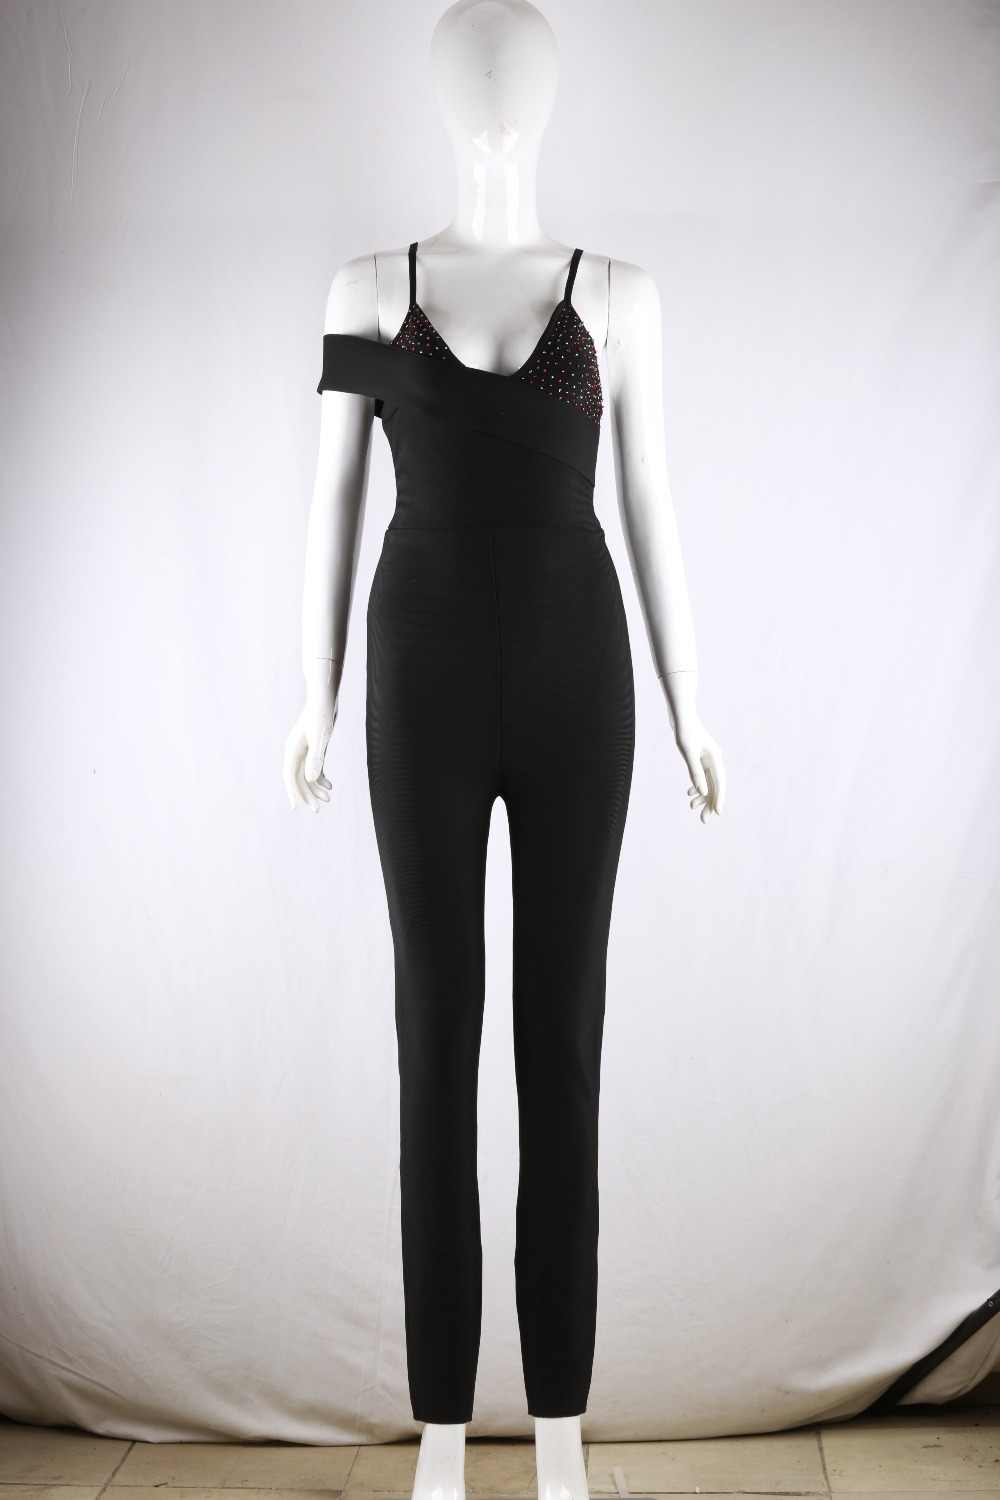 Asia-Pacific women's favorite fashion straps jumpsuit black beaded tight bodysuit high quality elastic tight feet pants 2019 new